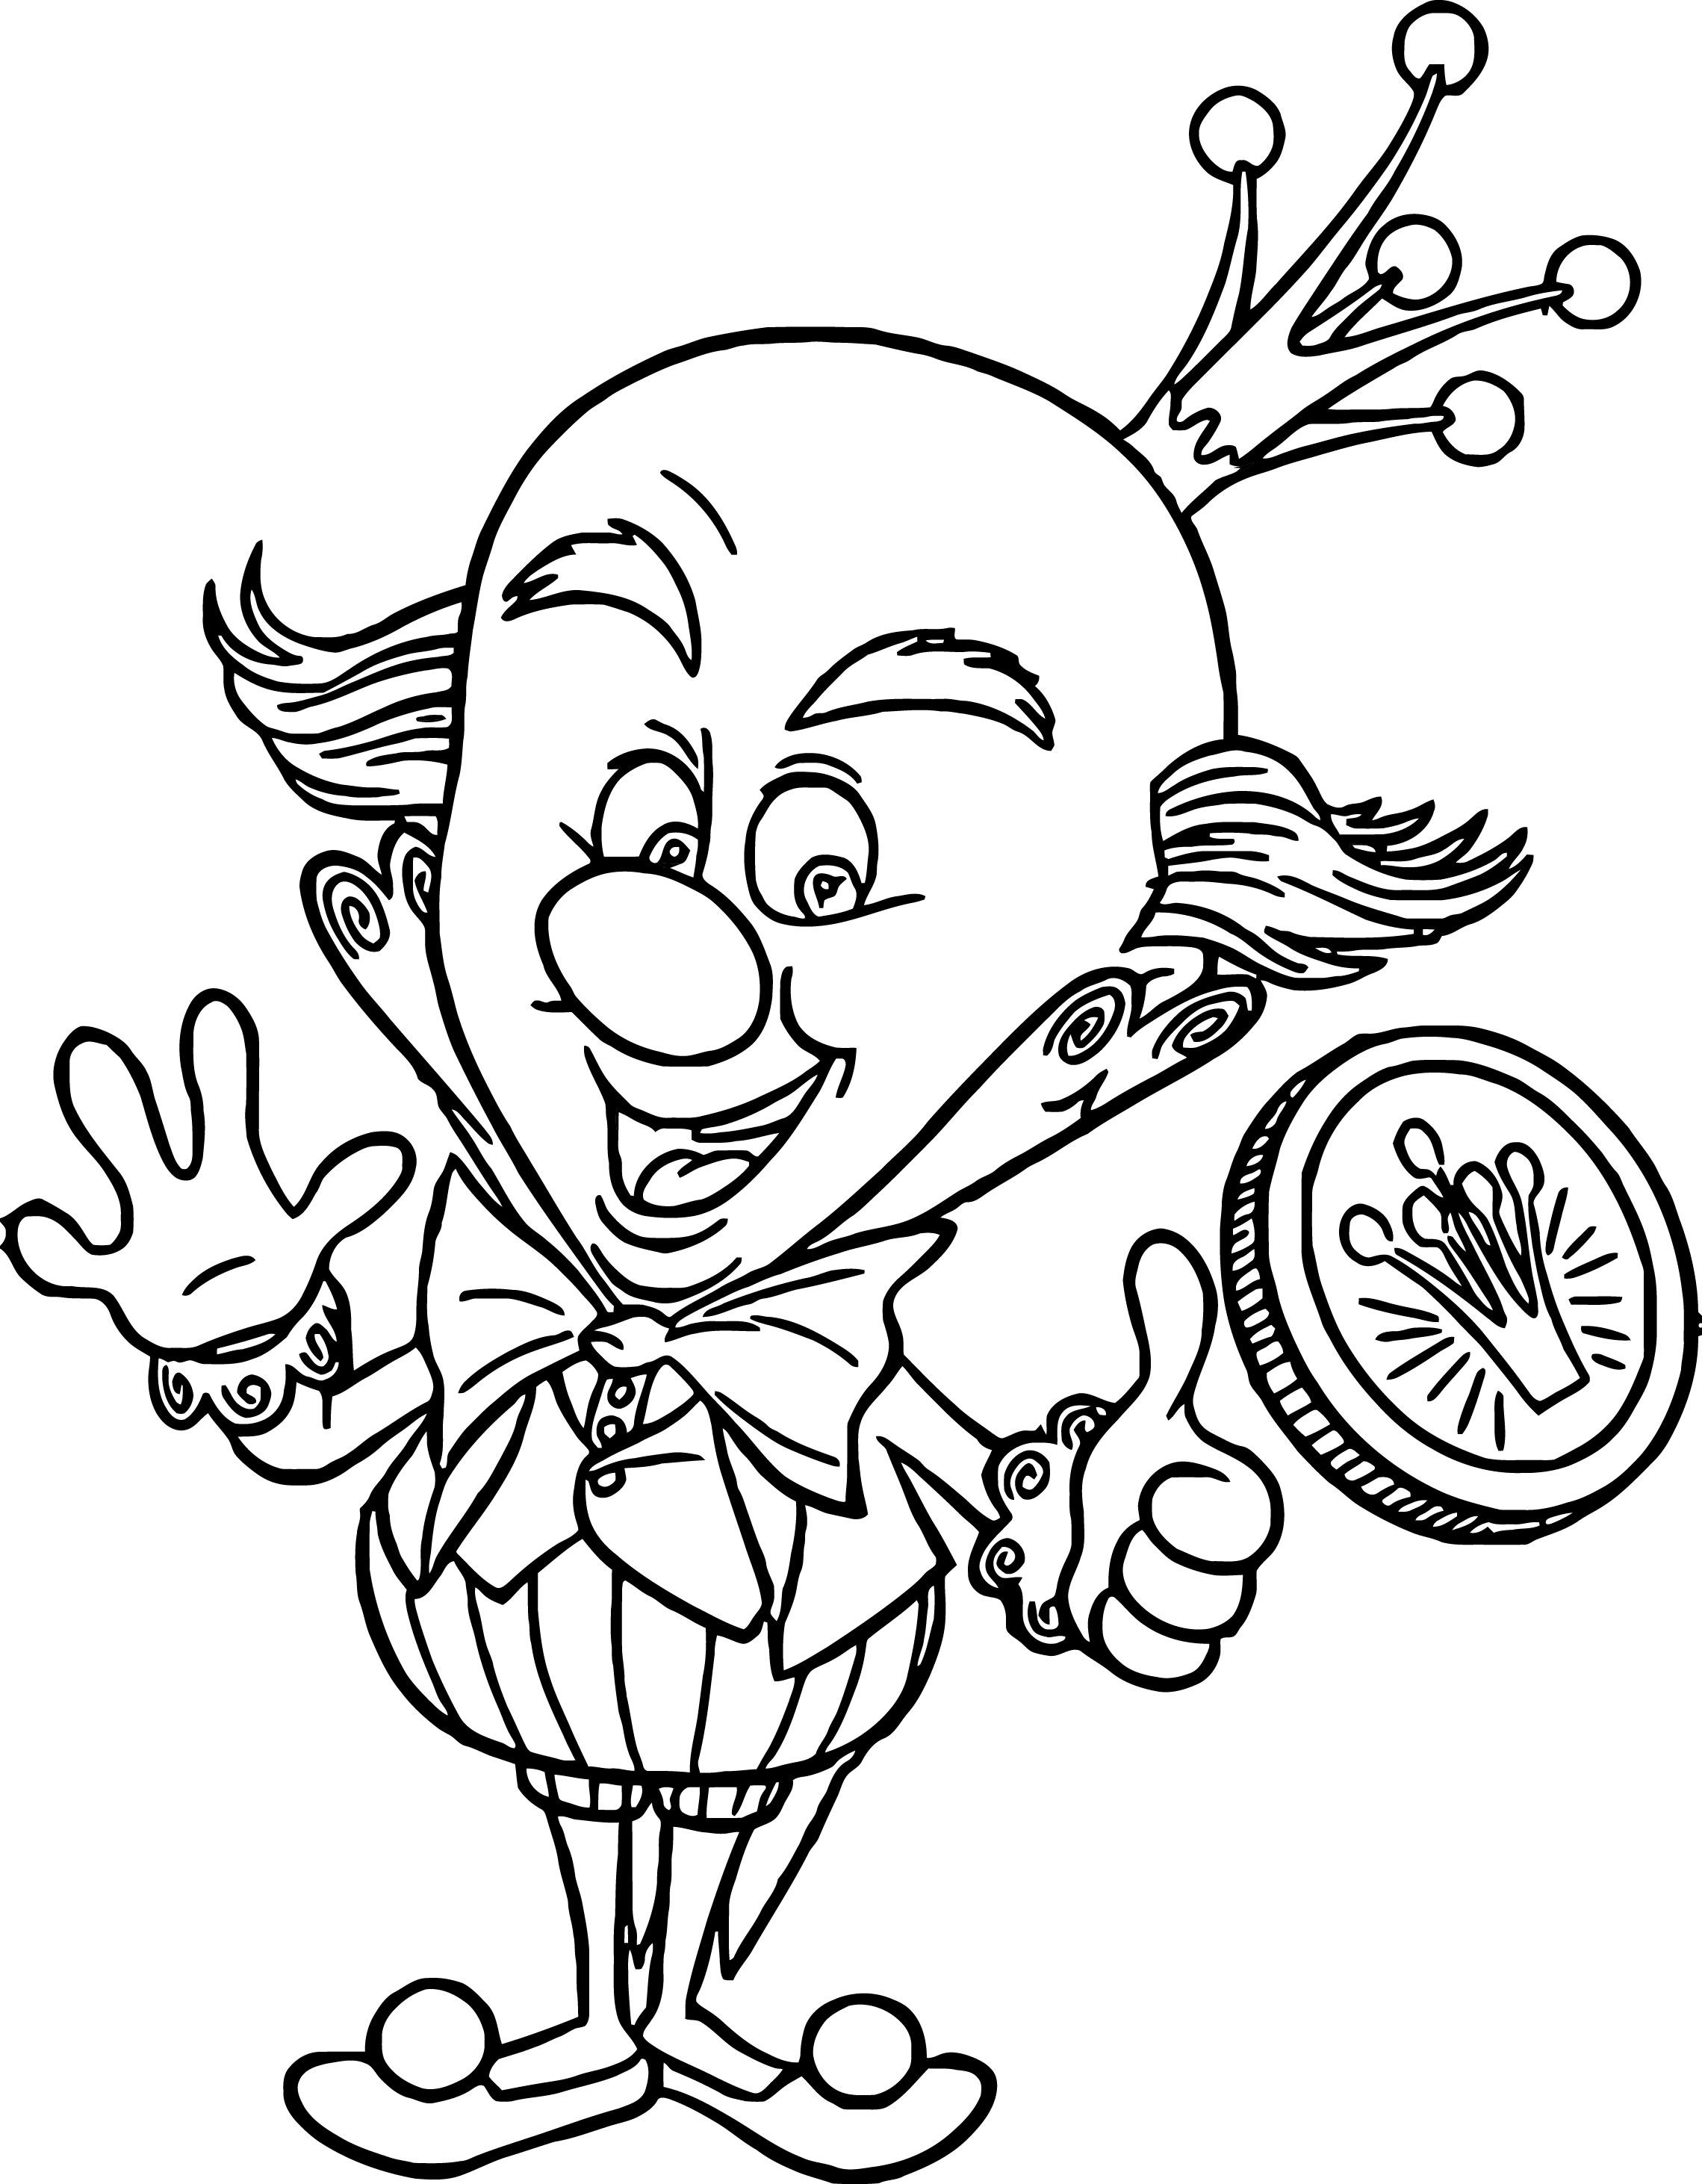 Cool Wreck It Ralph King Candy Medal Coloring Page Cartoon Coloring Pages Coloring Pages Candy Coloring Pages